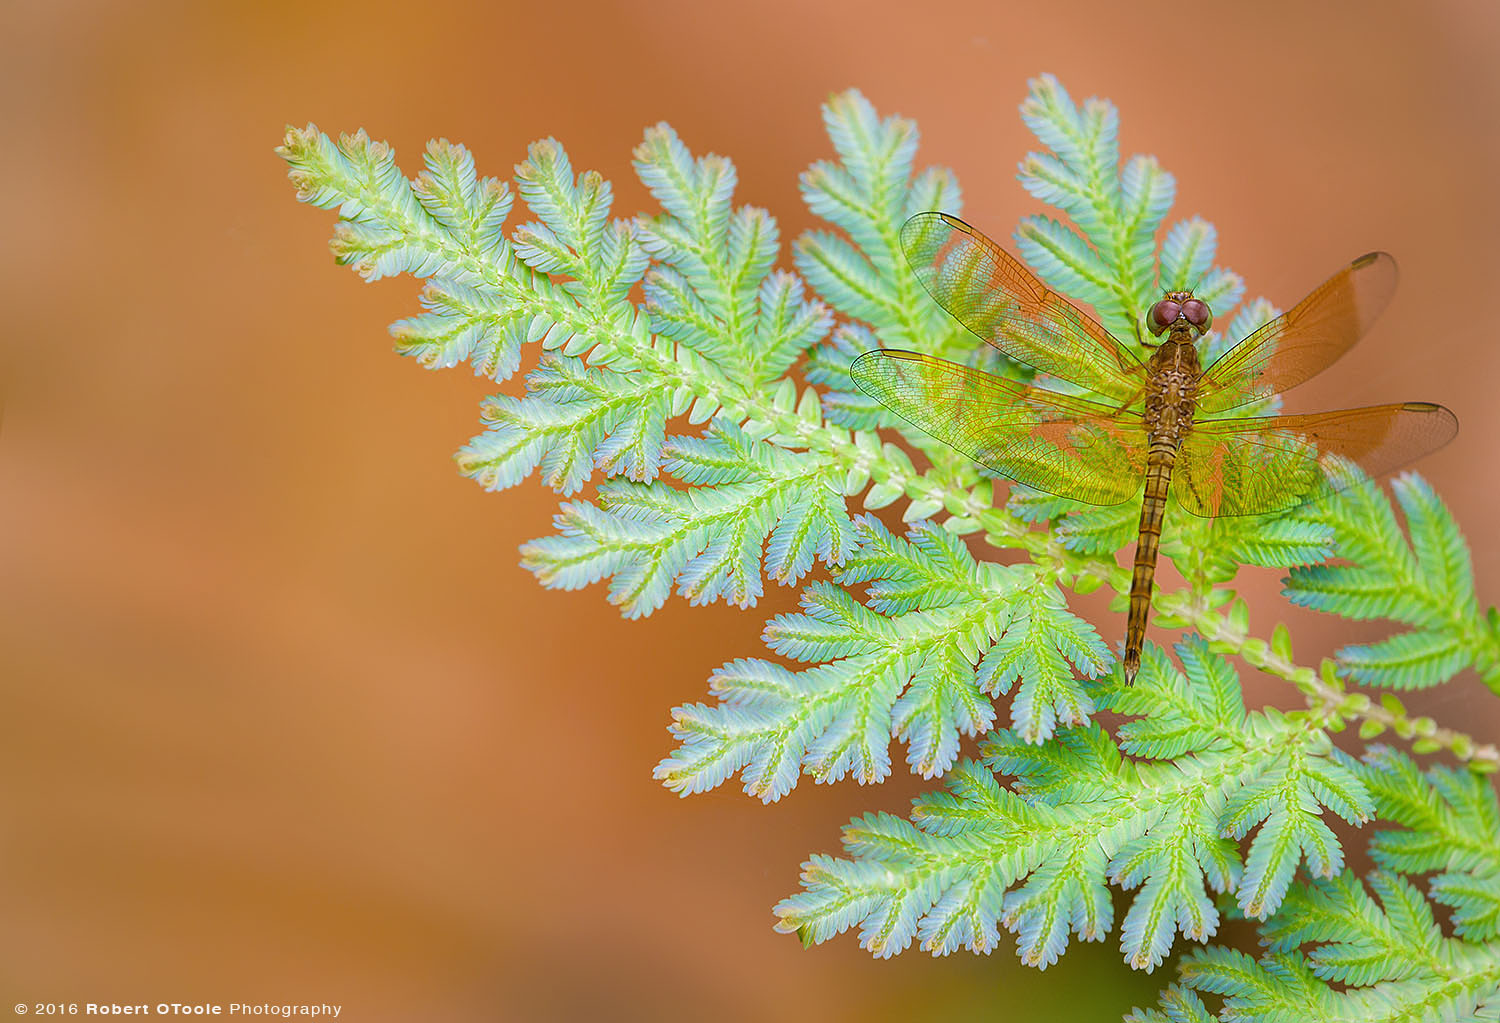 Common Parasol Dragonfly Resting on Peacock Fern